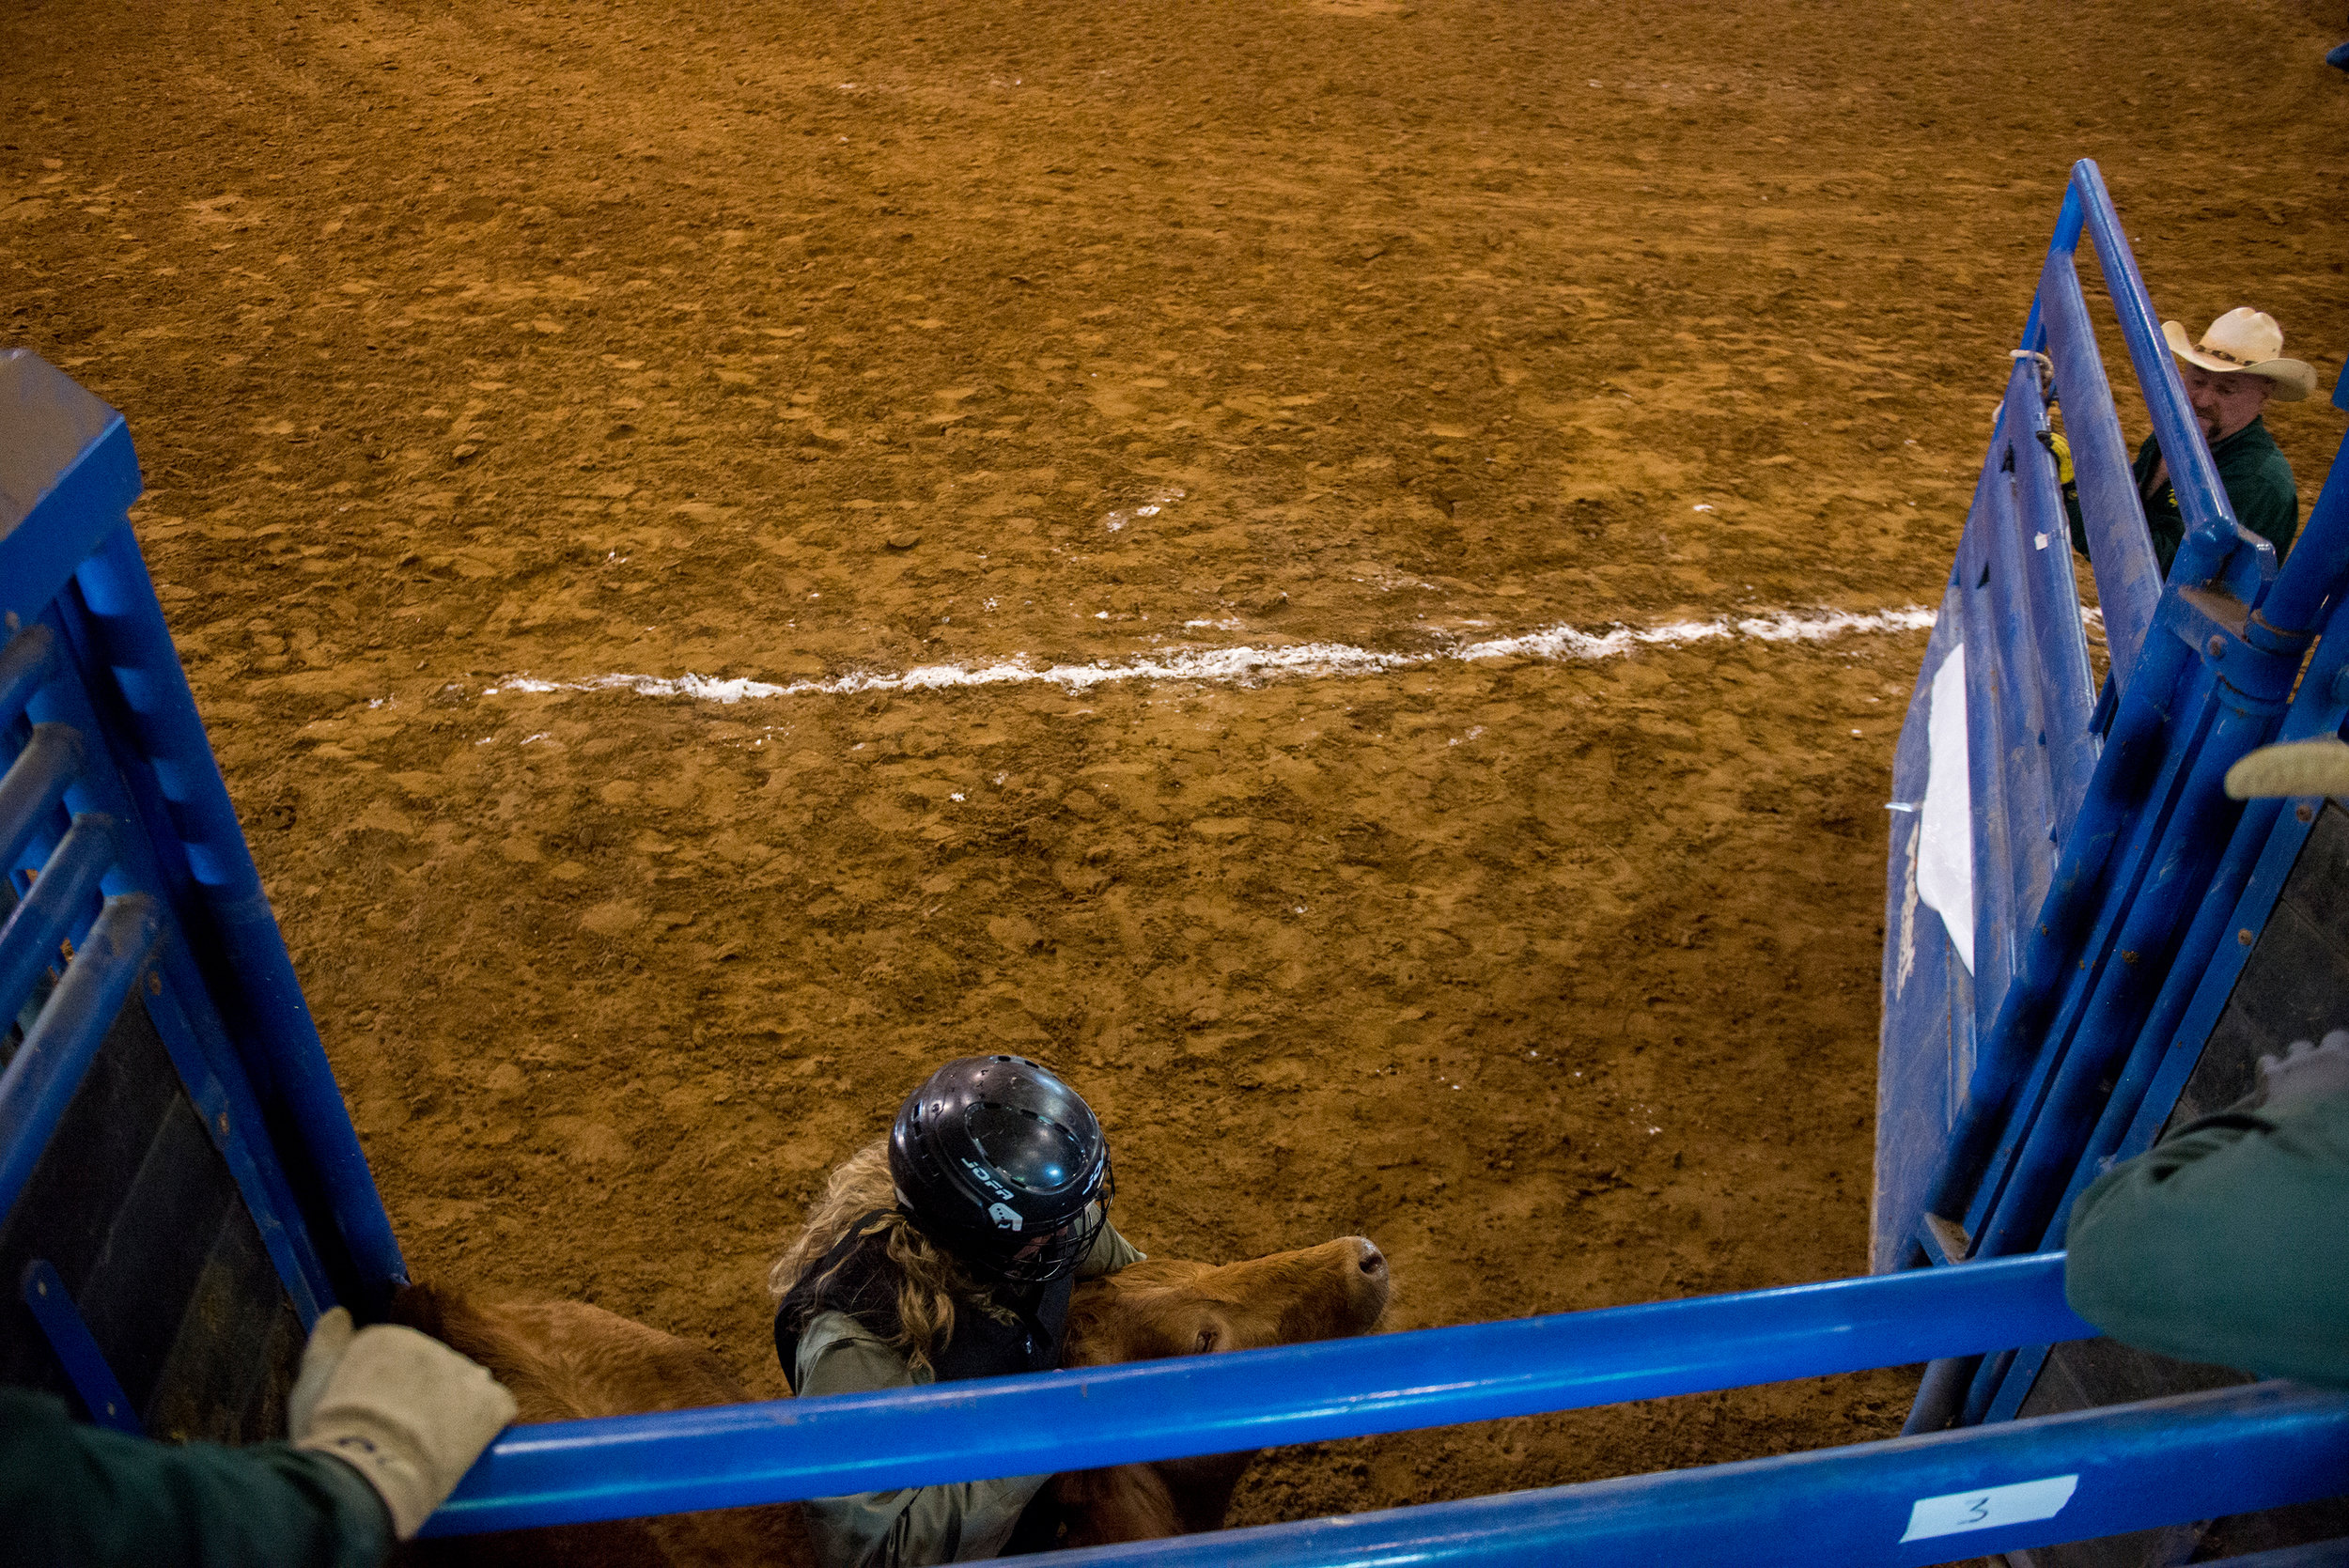 Texas Traditions Rodeo